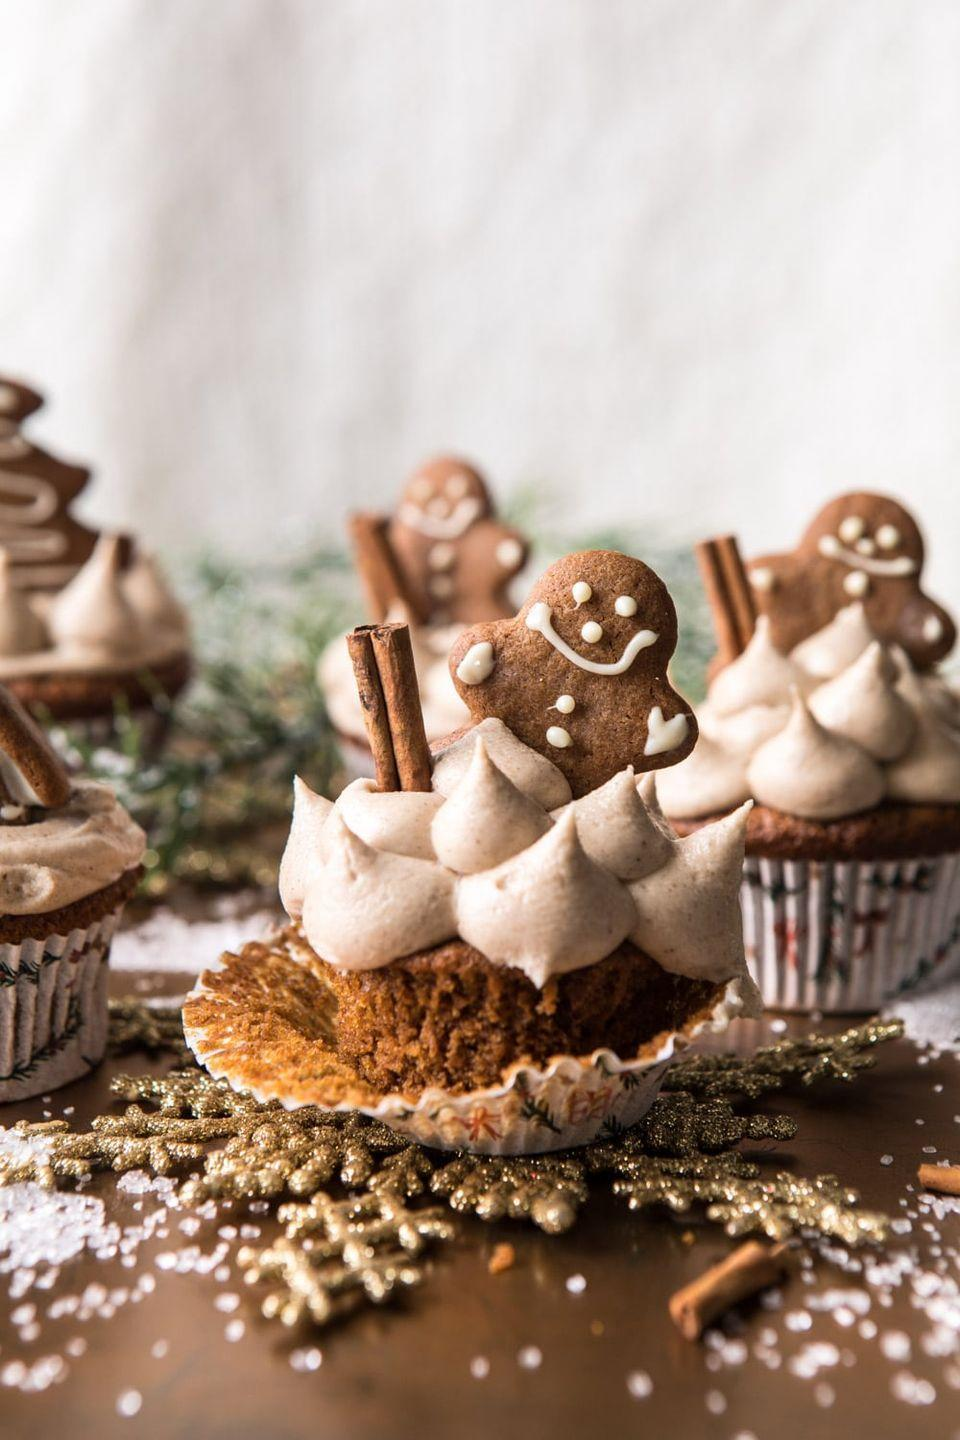 """<p>Somehow these taste even better than they look. Wild,<em> we know</em>. </p><p>Get the recipe from <a href=""""https://www.halfbakedharvest.com/gingerbread-cupcakes/"""" rel=""""nofollow noopener"""" target=""""_blank"""" data-ylk=""""slk:Half Baked Harvest"""" class=""""link rapid-noclick-resp"""">Half Baked Harvest</a>.</p>"""